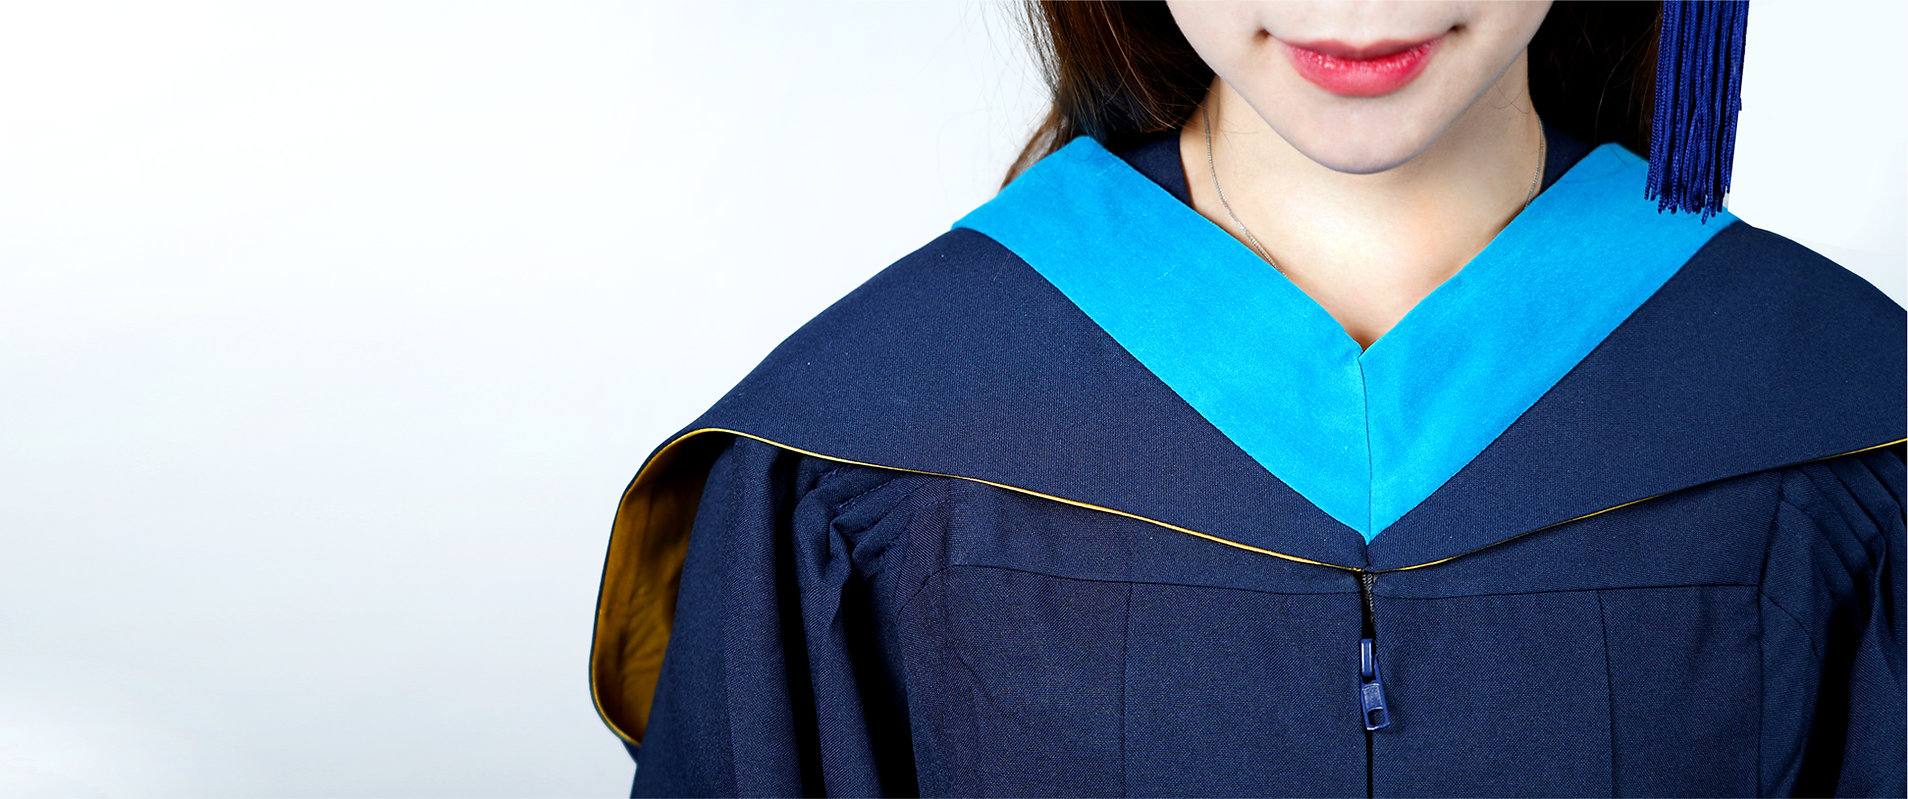 Hong Kong University of Science and Technology (HKUST) | Graduation Gown | HKUST Academic Dress | HKUST graduation gown | HKUST academic dress | UST graduation gown | UST Academic Dress | Rent | Buy | 租 | 買 | 科技大學畢業袍 | 科大學士畢業袍 | 科大碩士畢業袍 | 科大博士畢業袍 | 科大畢業袍 | UST畢業袍 | UST學士袍 | HKUST畢業袍 | HKUST學士袍 | #科技大學畢業袍 #科大畢業袍 #UST畢業袍 #HKUST畢業袍 #UST graduation gown #UST academic dress #HKUST graduation gown #HKUST academic dress